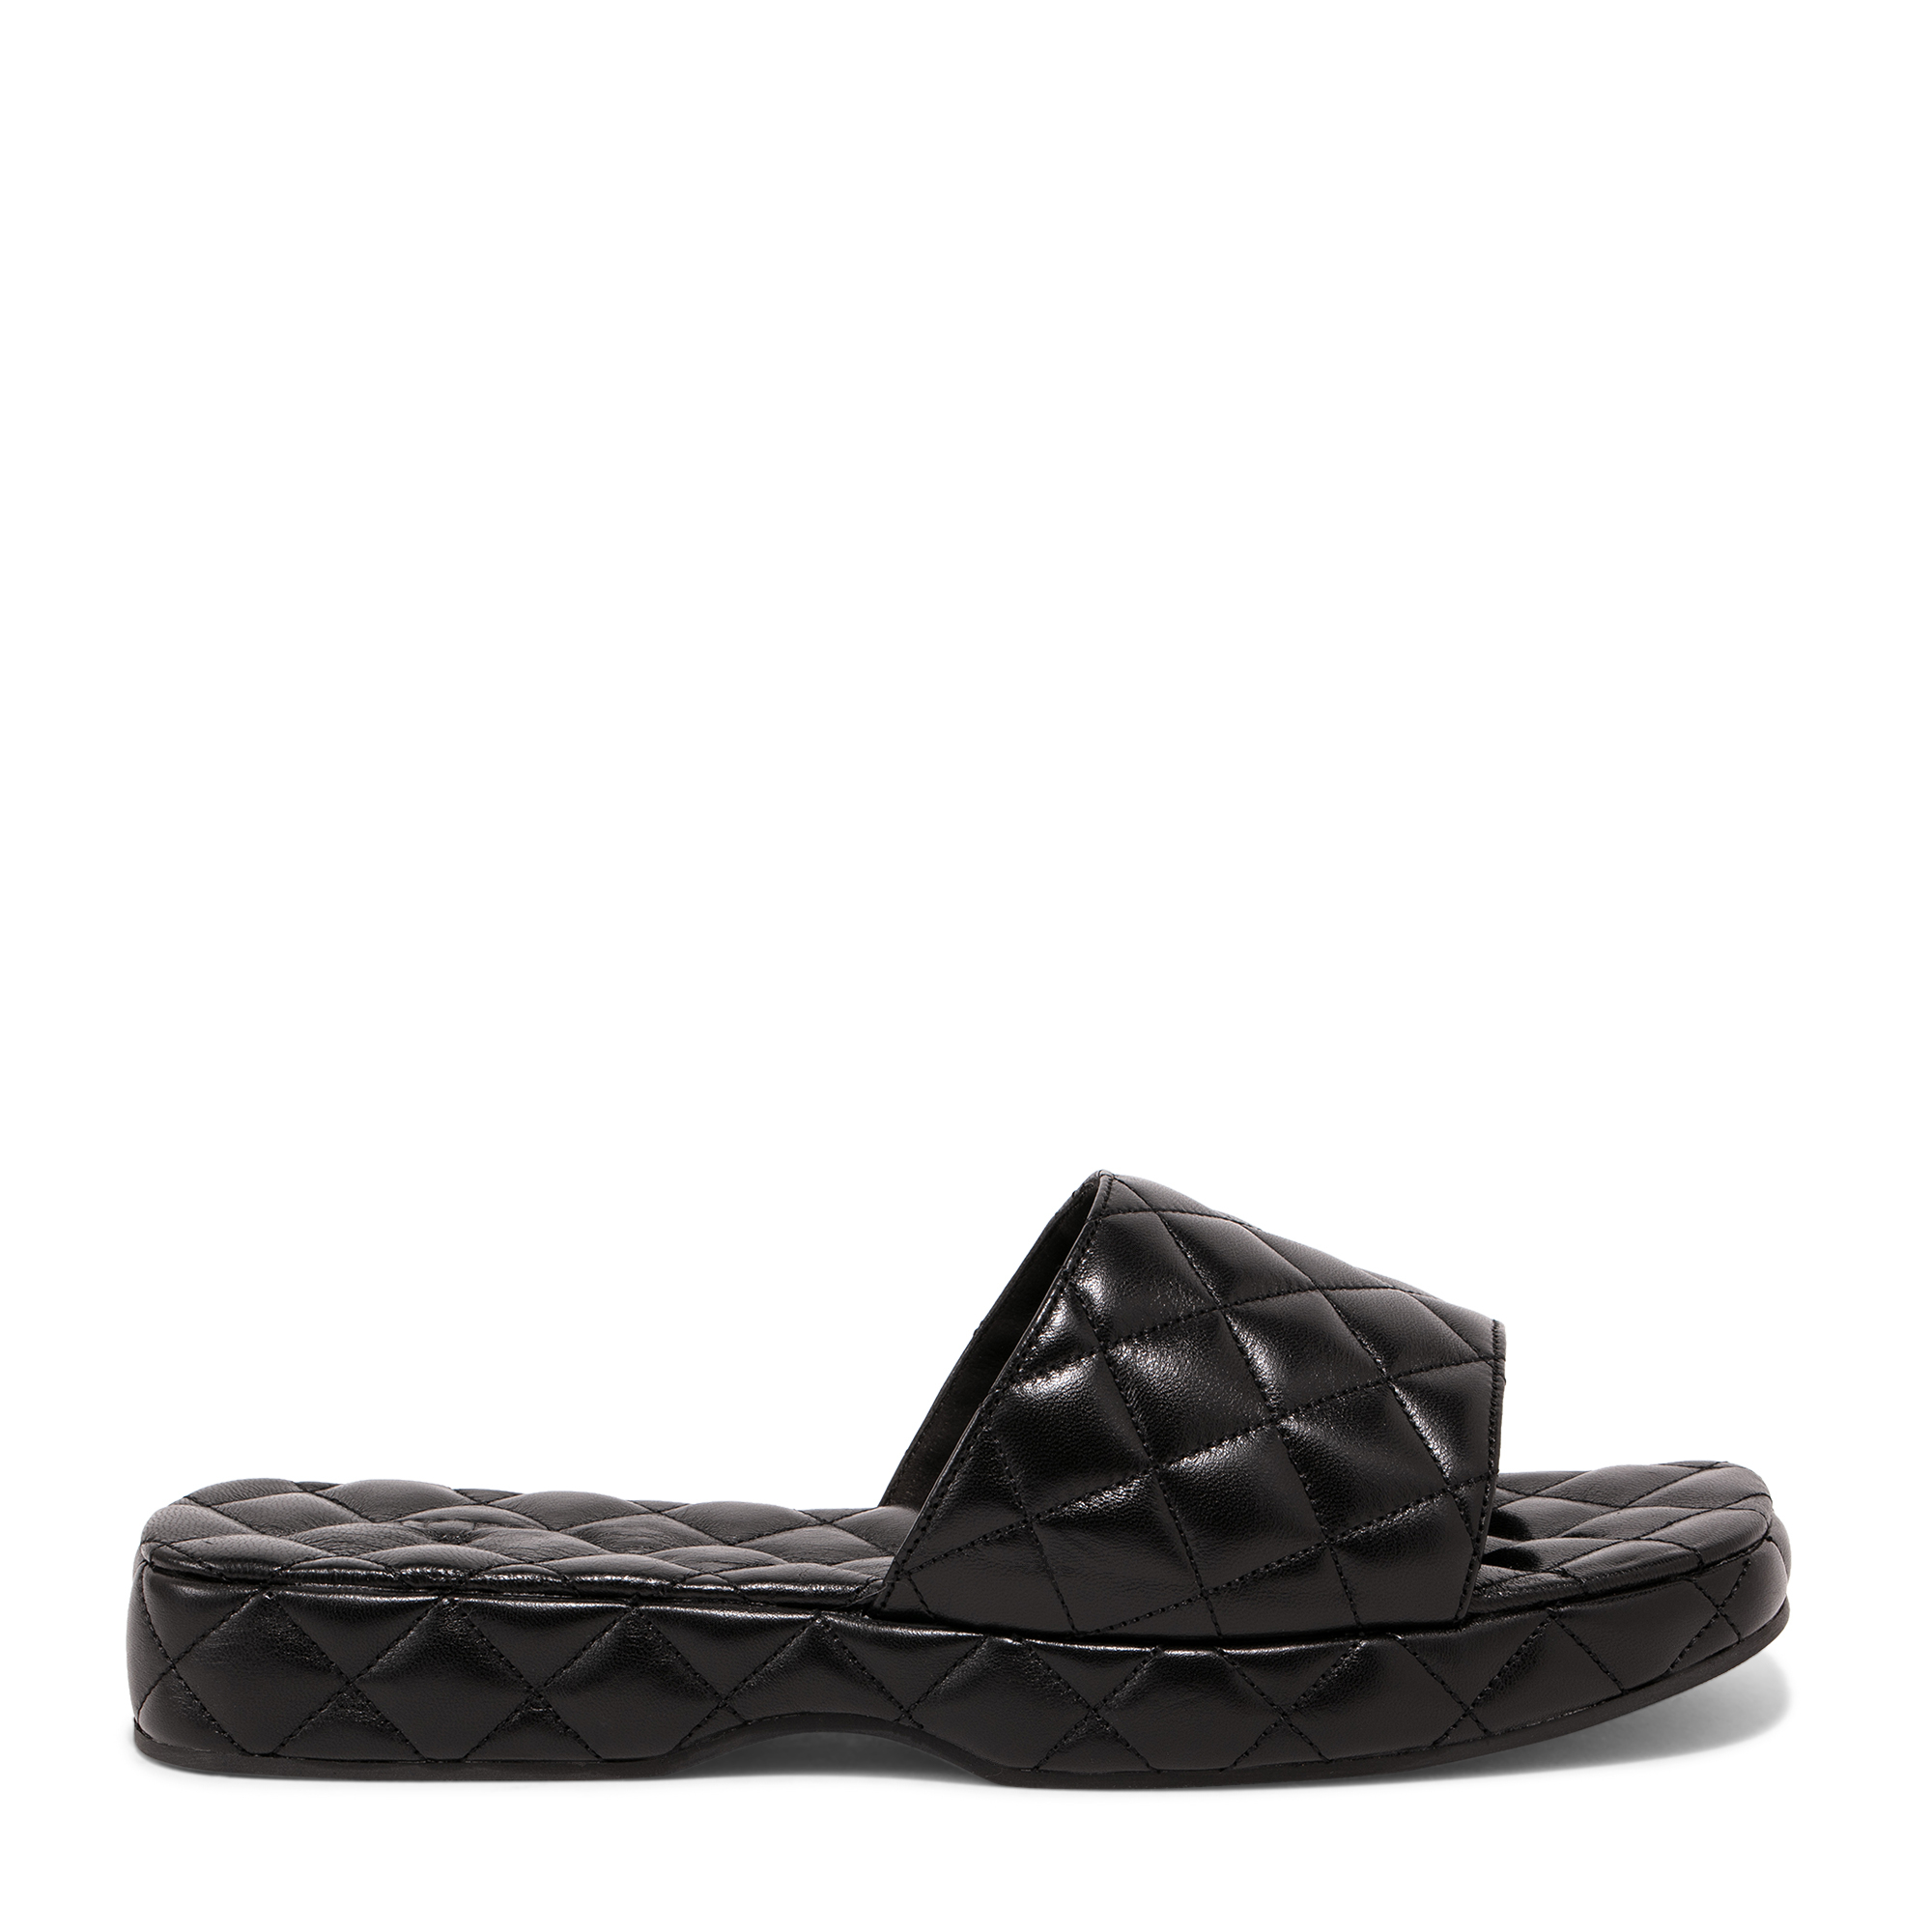 Lilo wedges